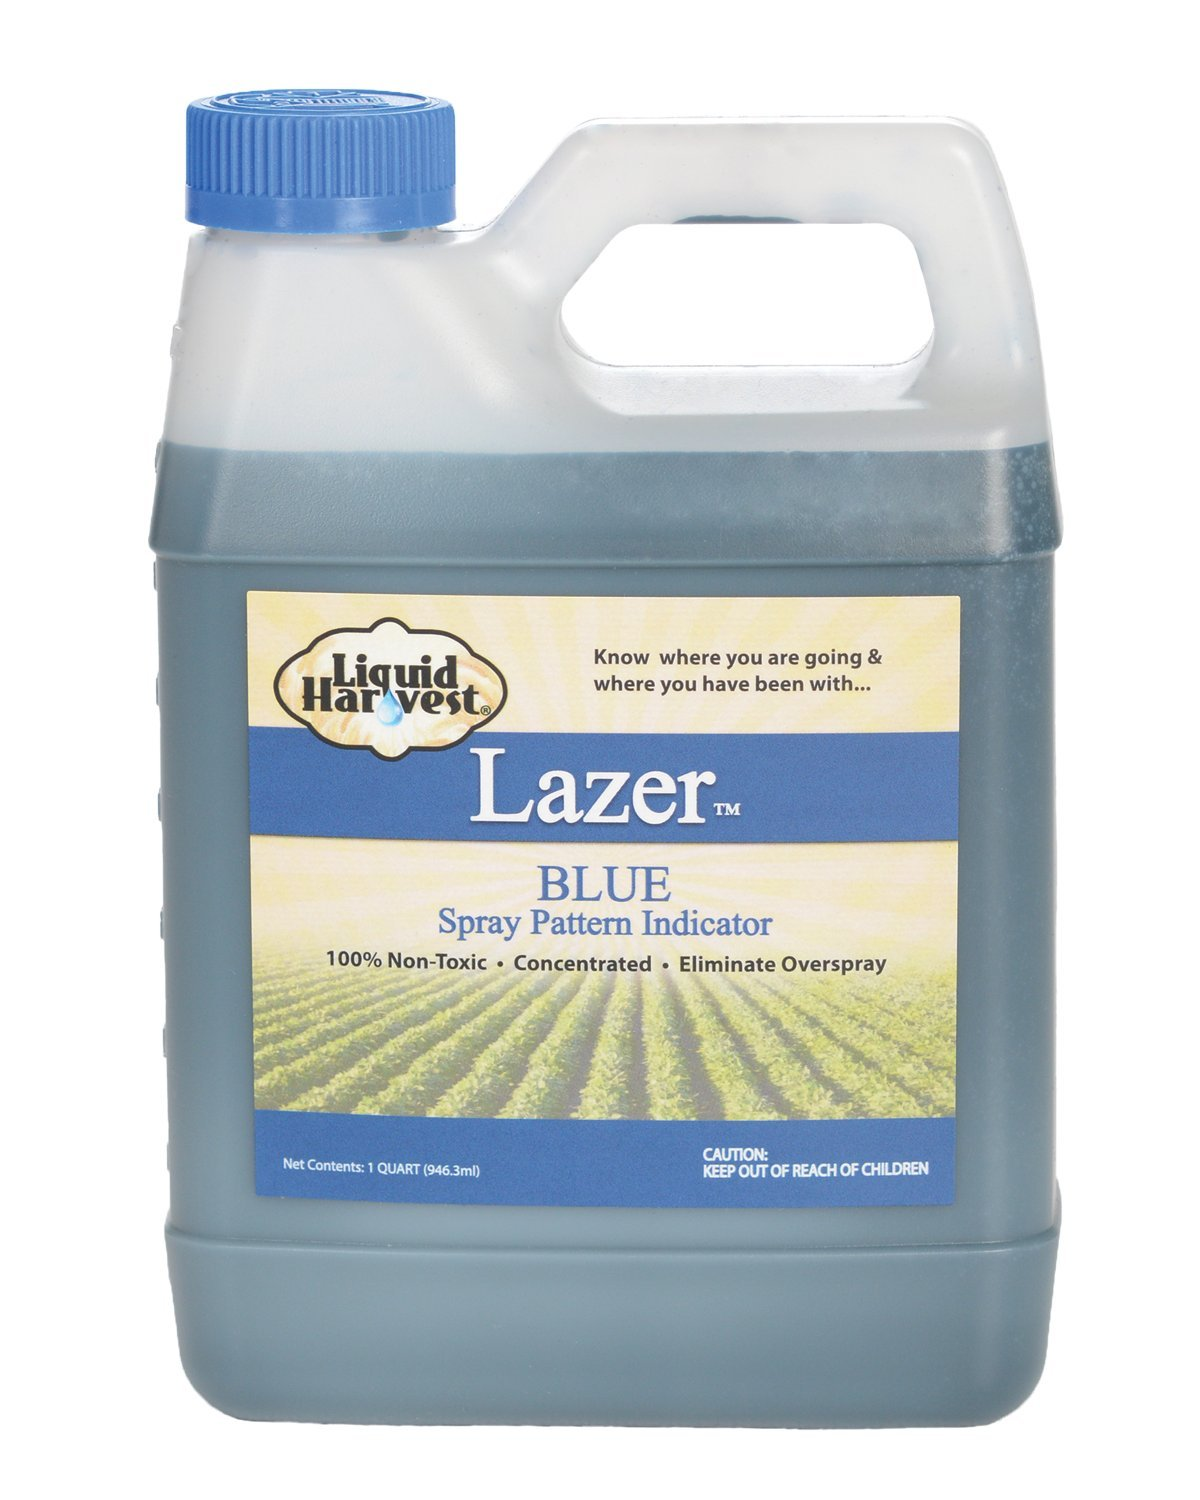 Liquid Harvest Lazer Blue Concentrated Spray Pattern Indicator - 1 Quart (32 Ounces) - Perfect Weed Spray Dye, Herbicide Dye, Fertilizer Marking Dye, Turf Mark and Blue Herbicide Marker